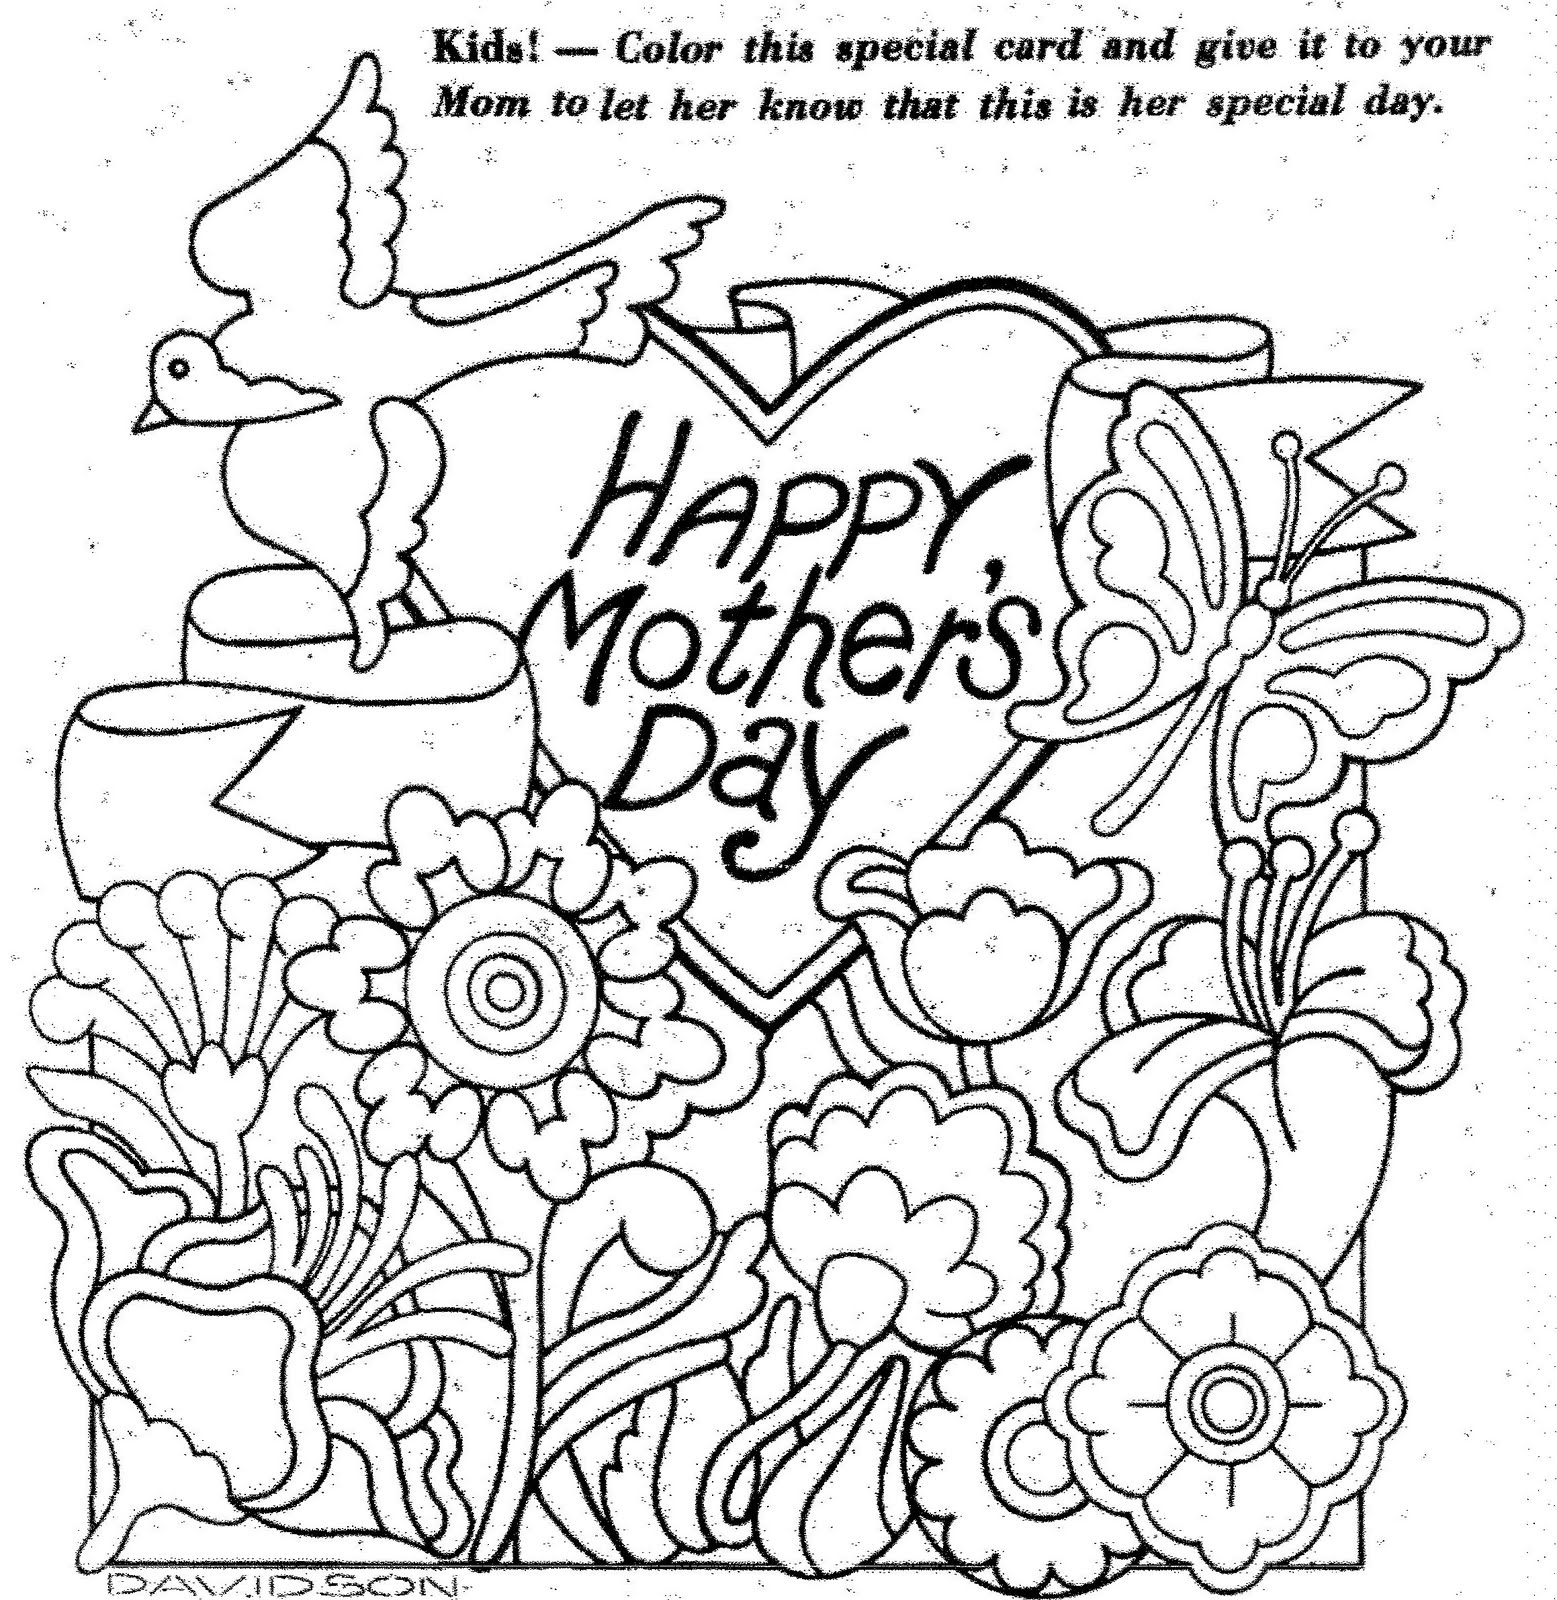 Mothers day coloring sheets cards - Color This Special Card 1975 Mostly Paper Dolls Kids Color This Special Card 1975 Get Well Soon Mom Coloring Pages